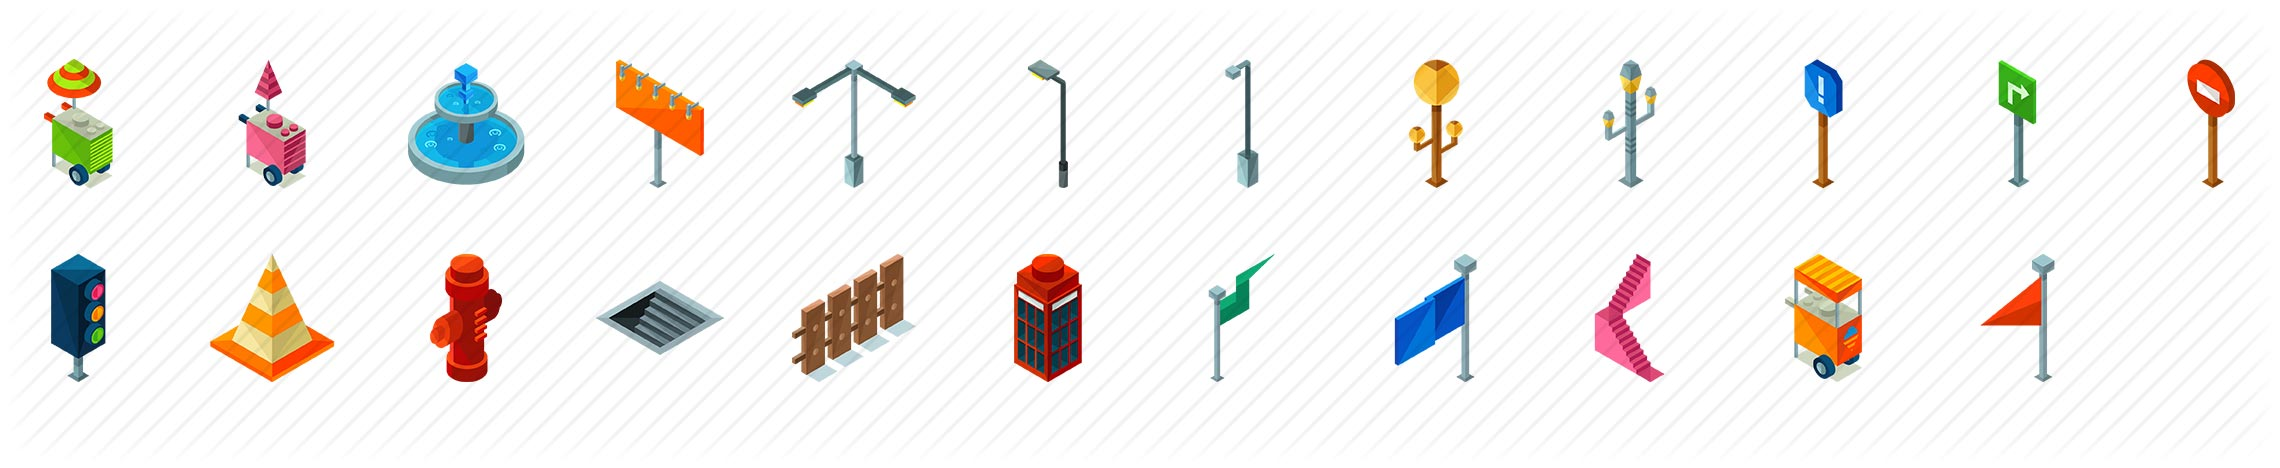 Street Elements Isometric Icons